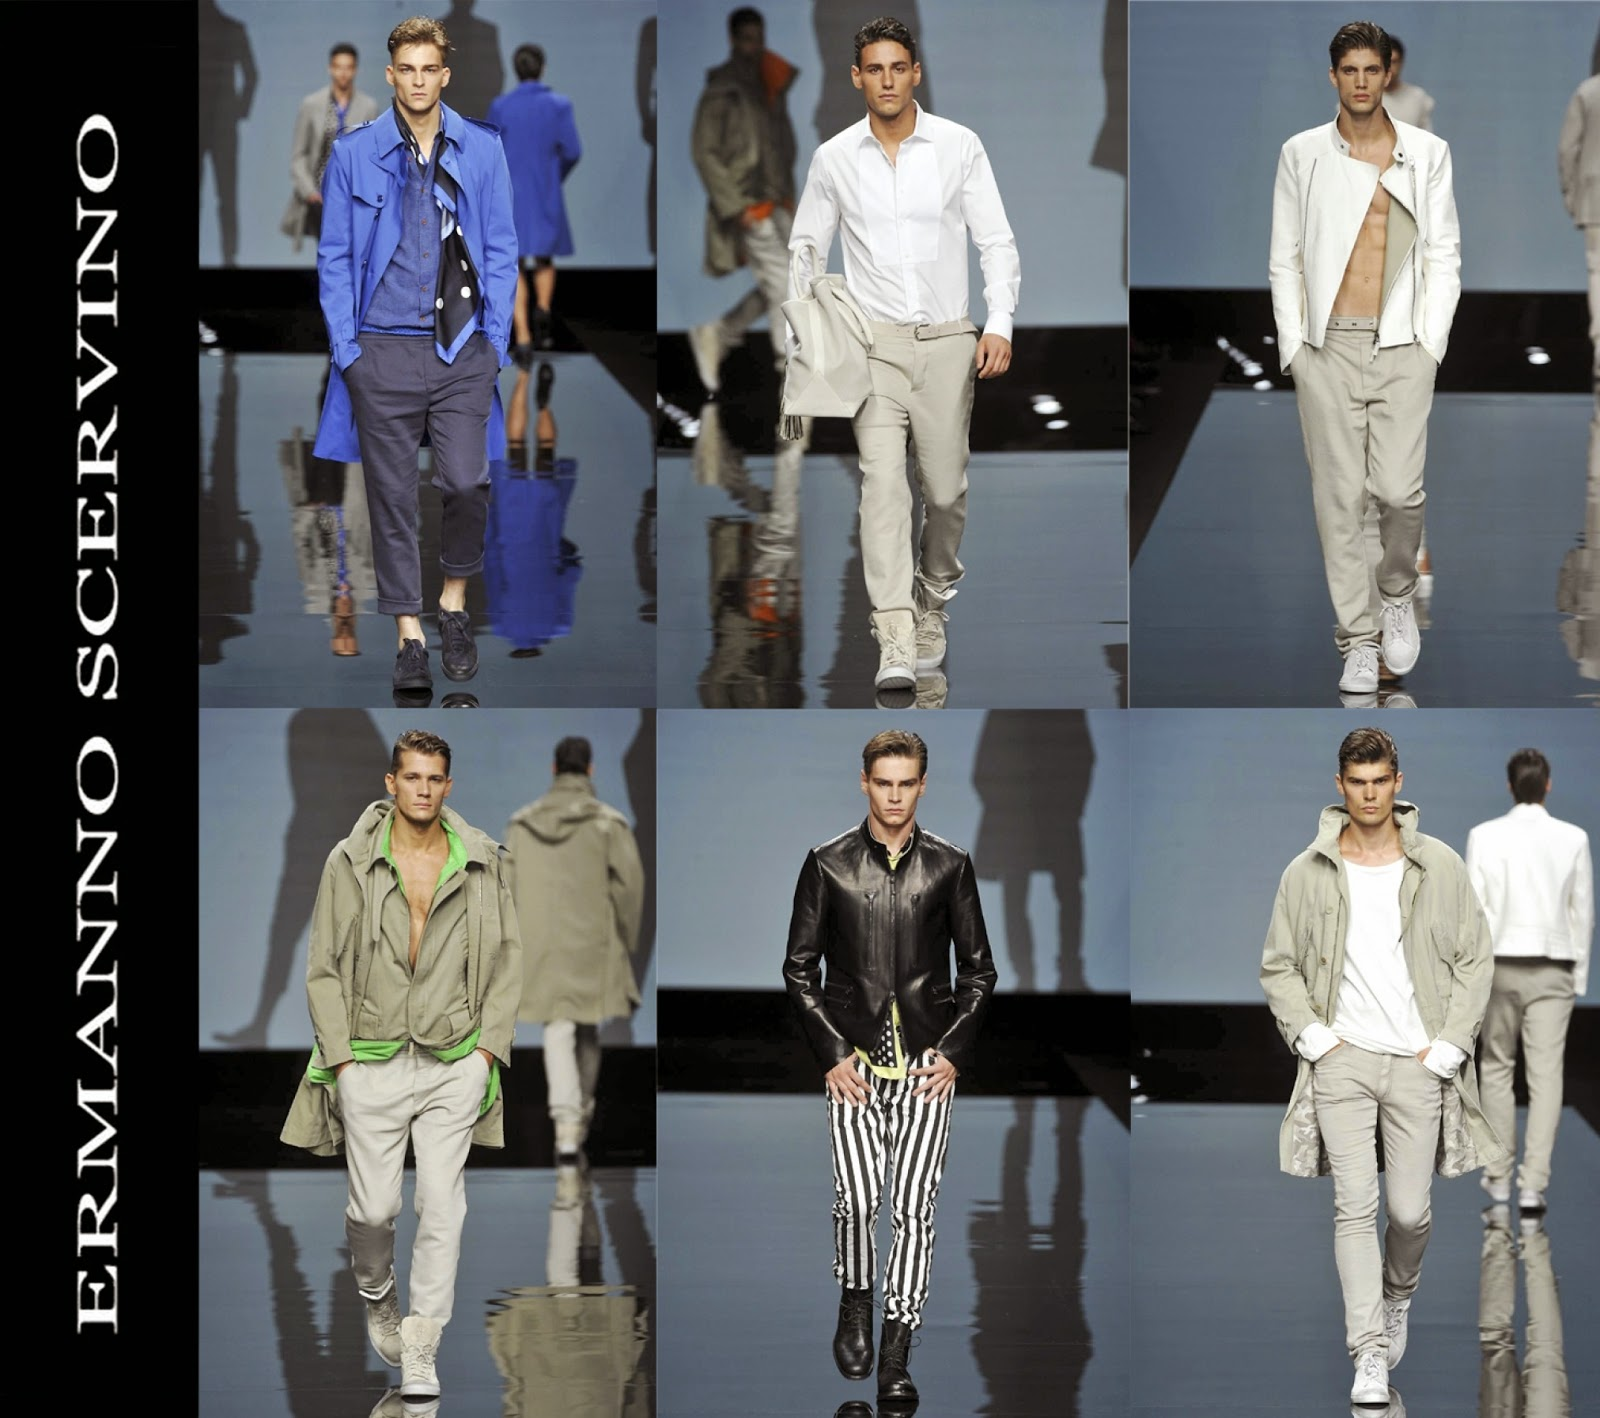 Eniwhere Fashion - Milano Moda Uomo - Primavera Estate 2015 - Ermanno Scervino